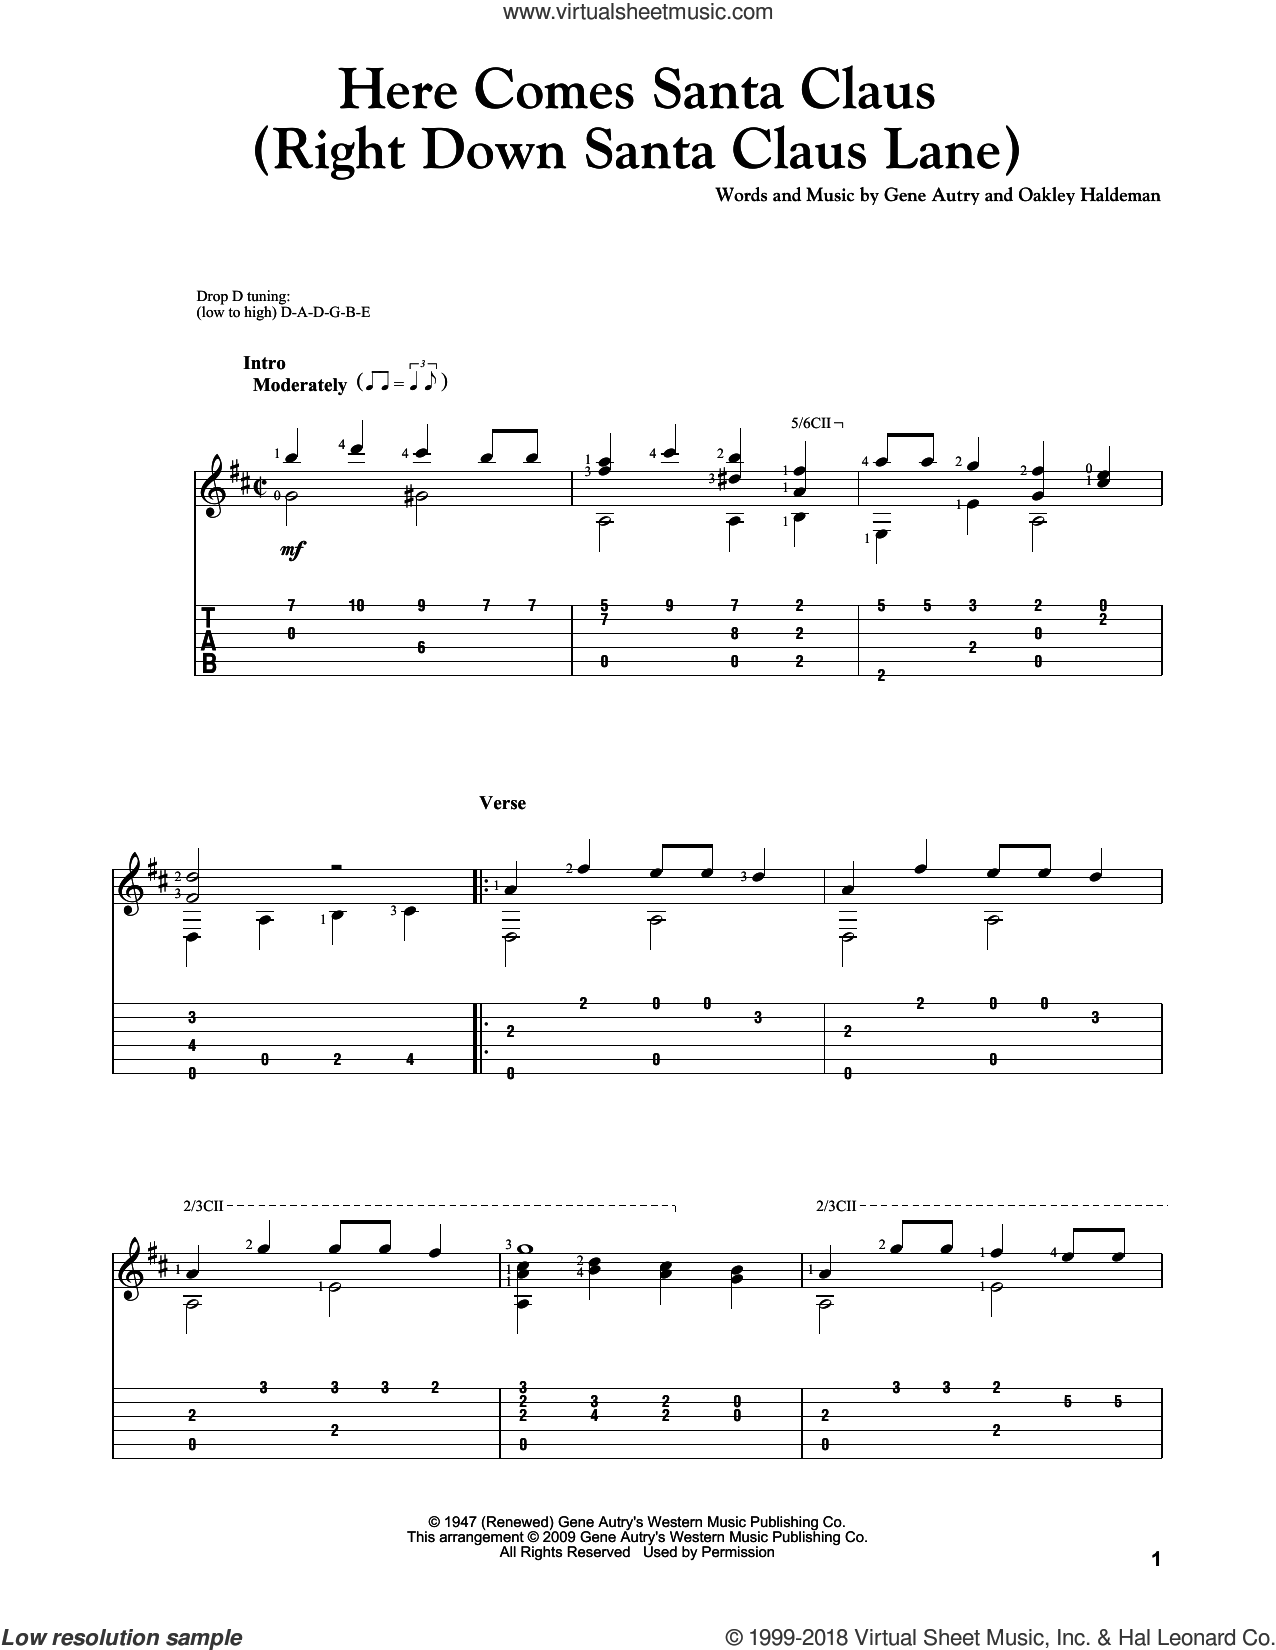 Here Comes Santa Claus (Right Down Santa Claus Lane) sheet music for guitar solo by Oakley Haldeman and Gene Autry